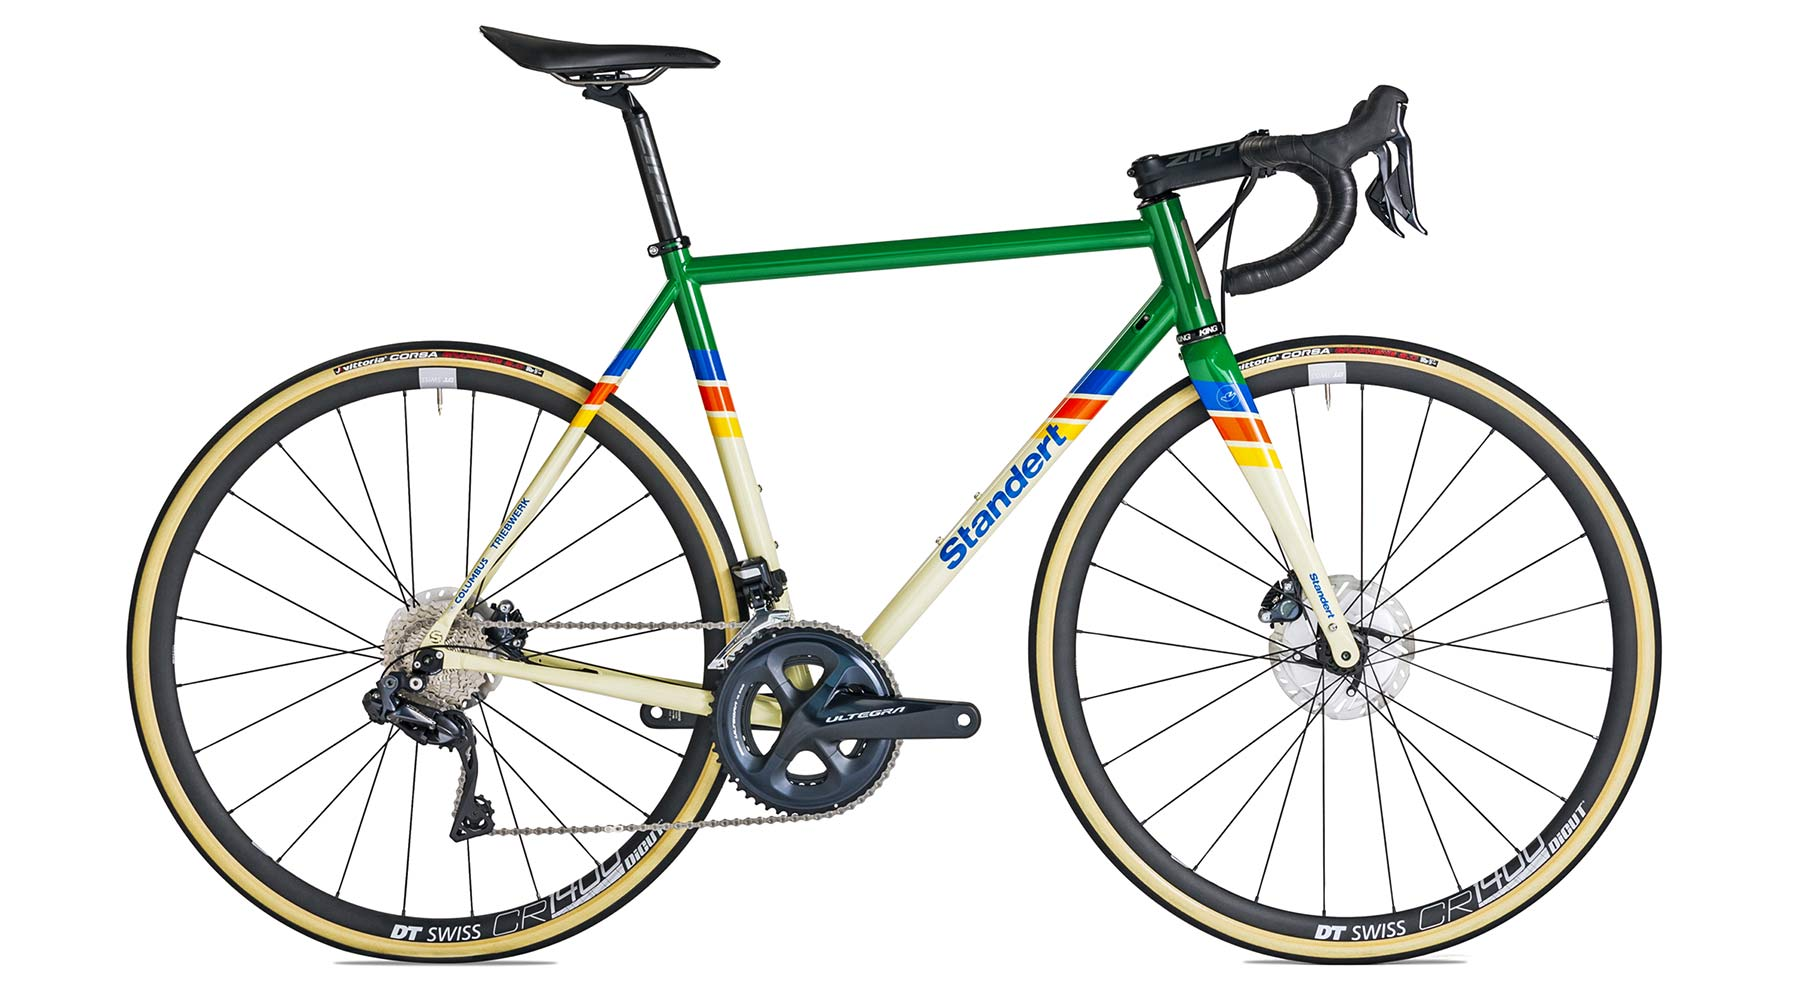 2021 Standert Triebwerk Disc all-road bike, updated modern Columbus steel road bike, LTD complete